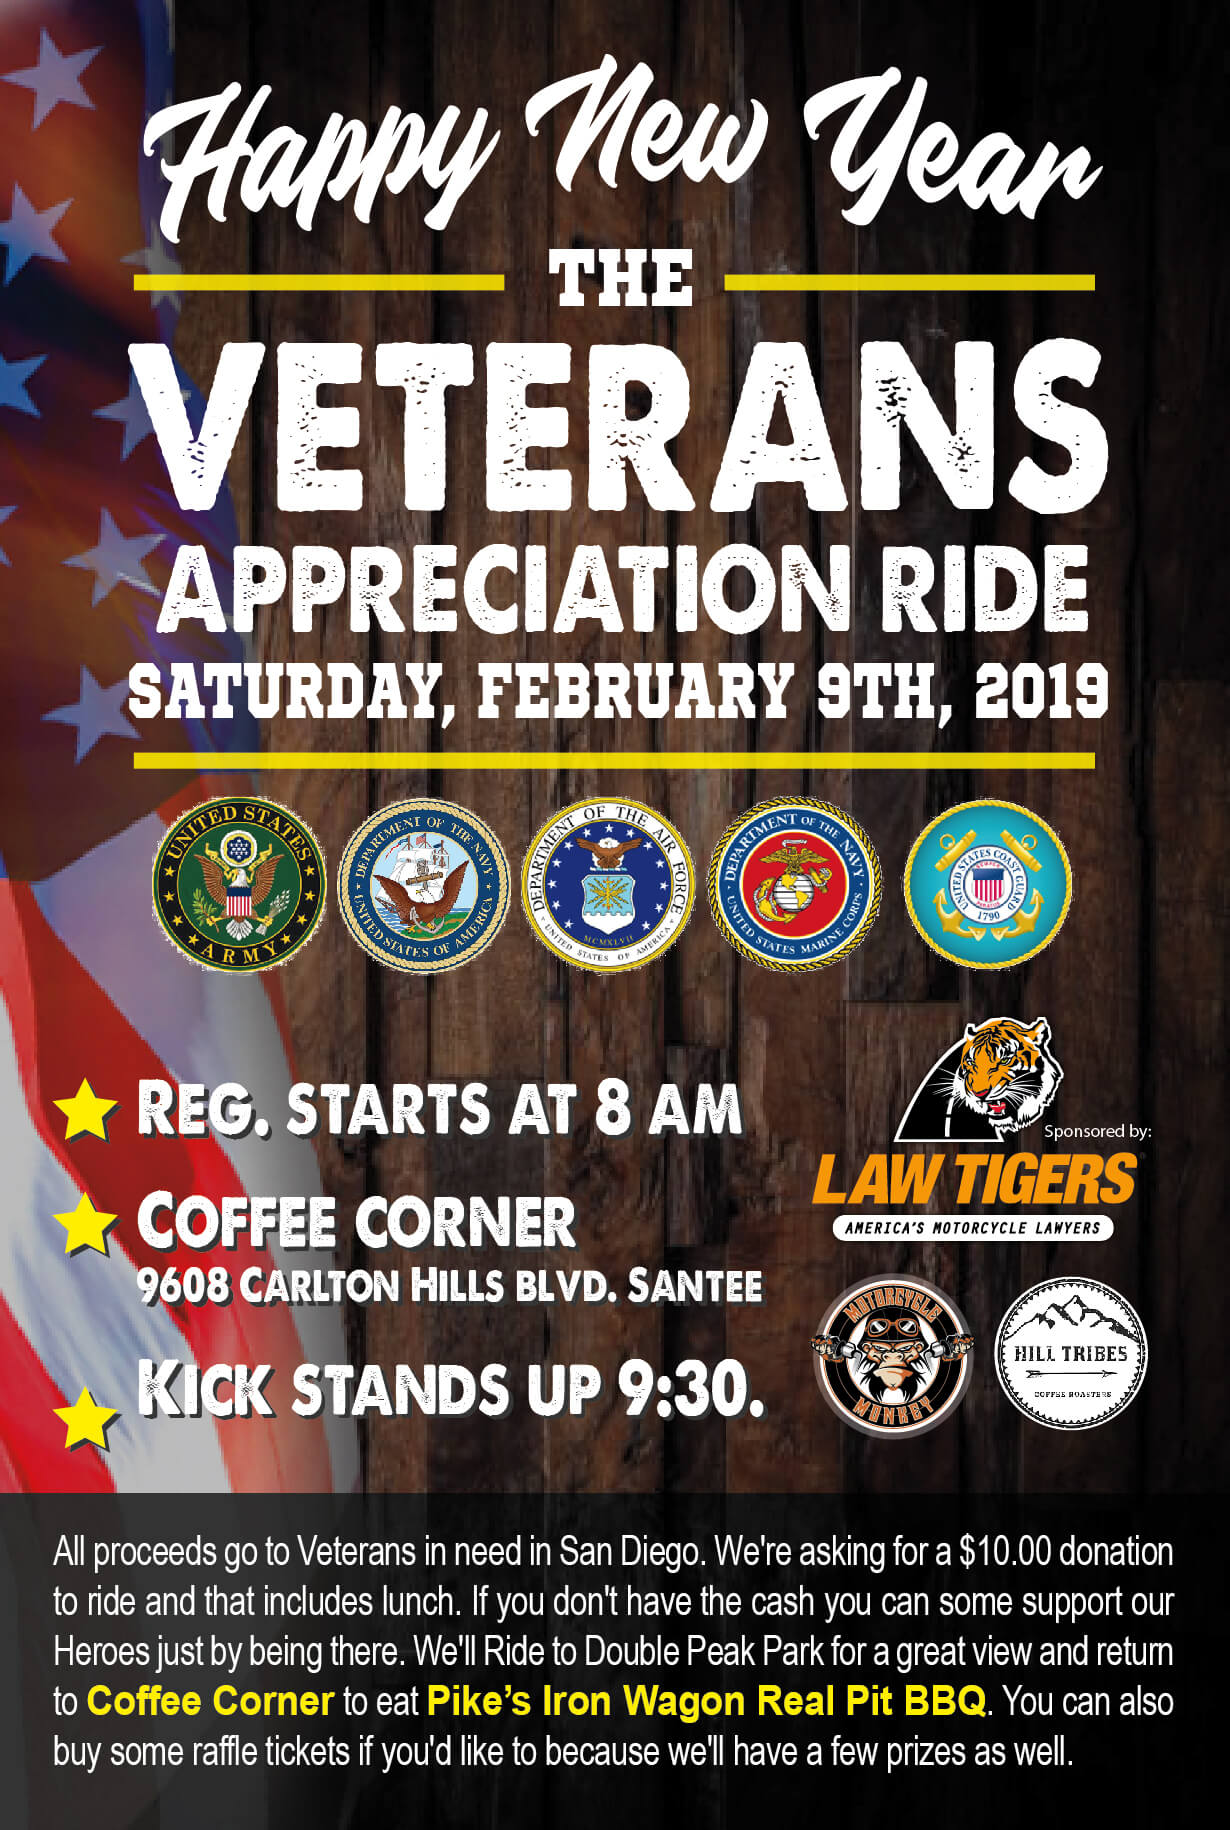 Clint's Ride Club and 2nd Annual Vet Appreciation Ride